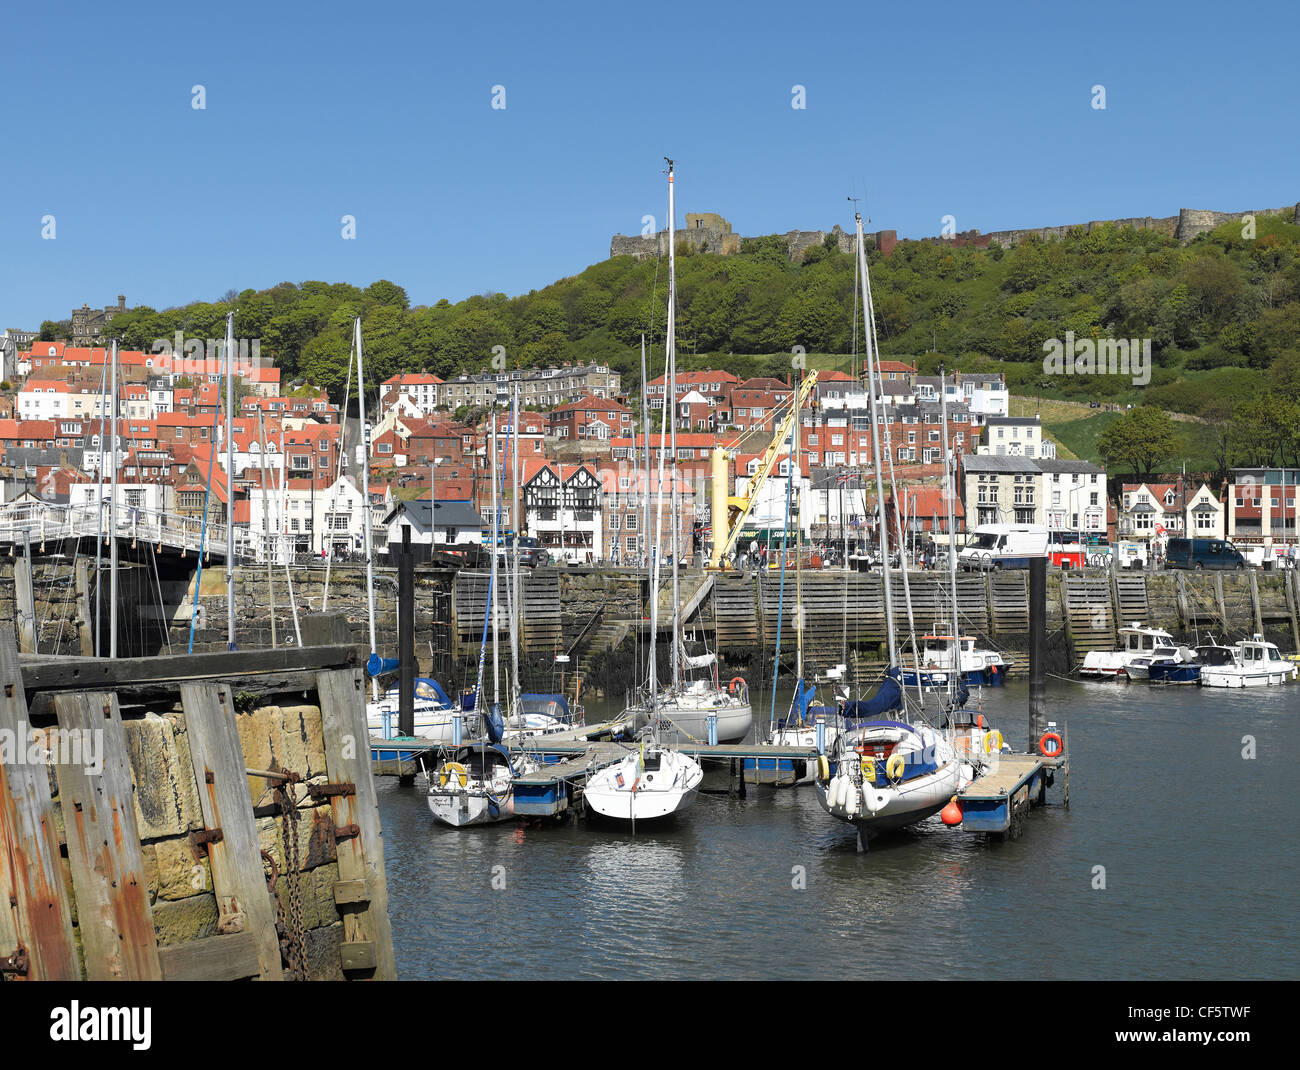 Small boats moored in Scarborough's Inner Harbour at low tide. Stock Photo